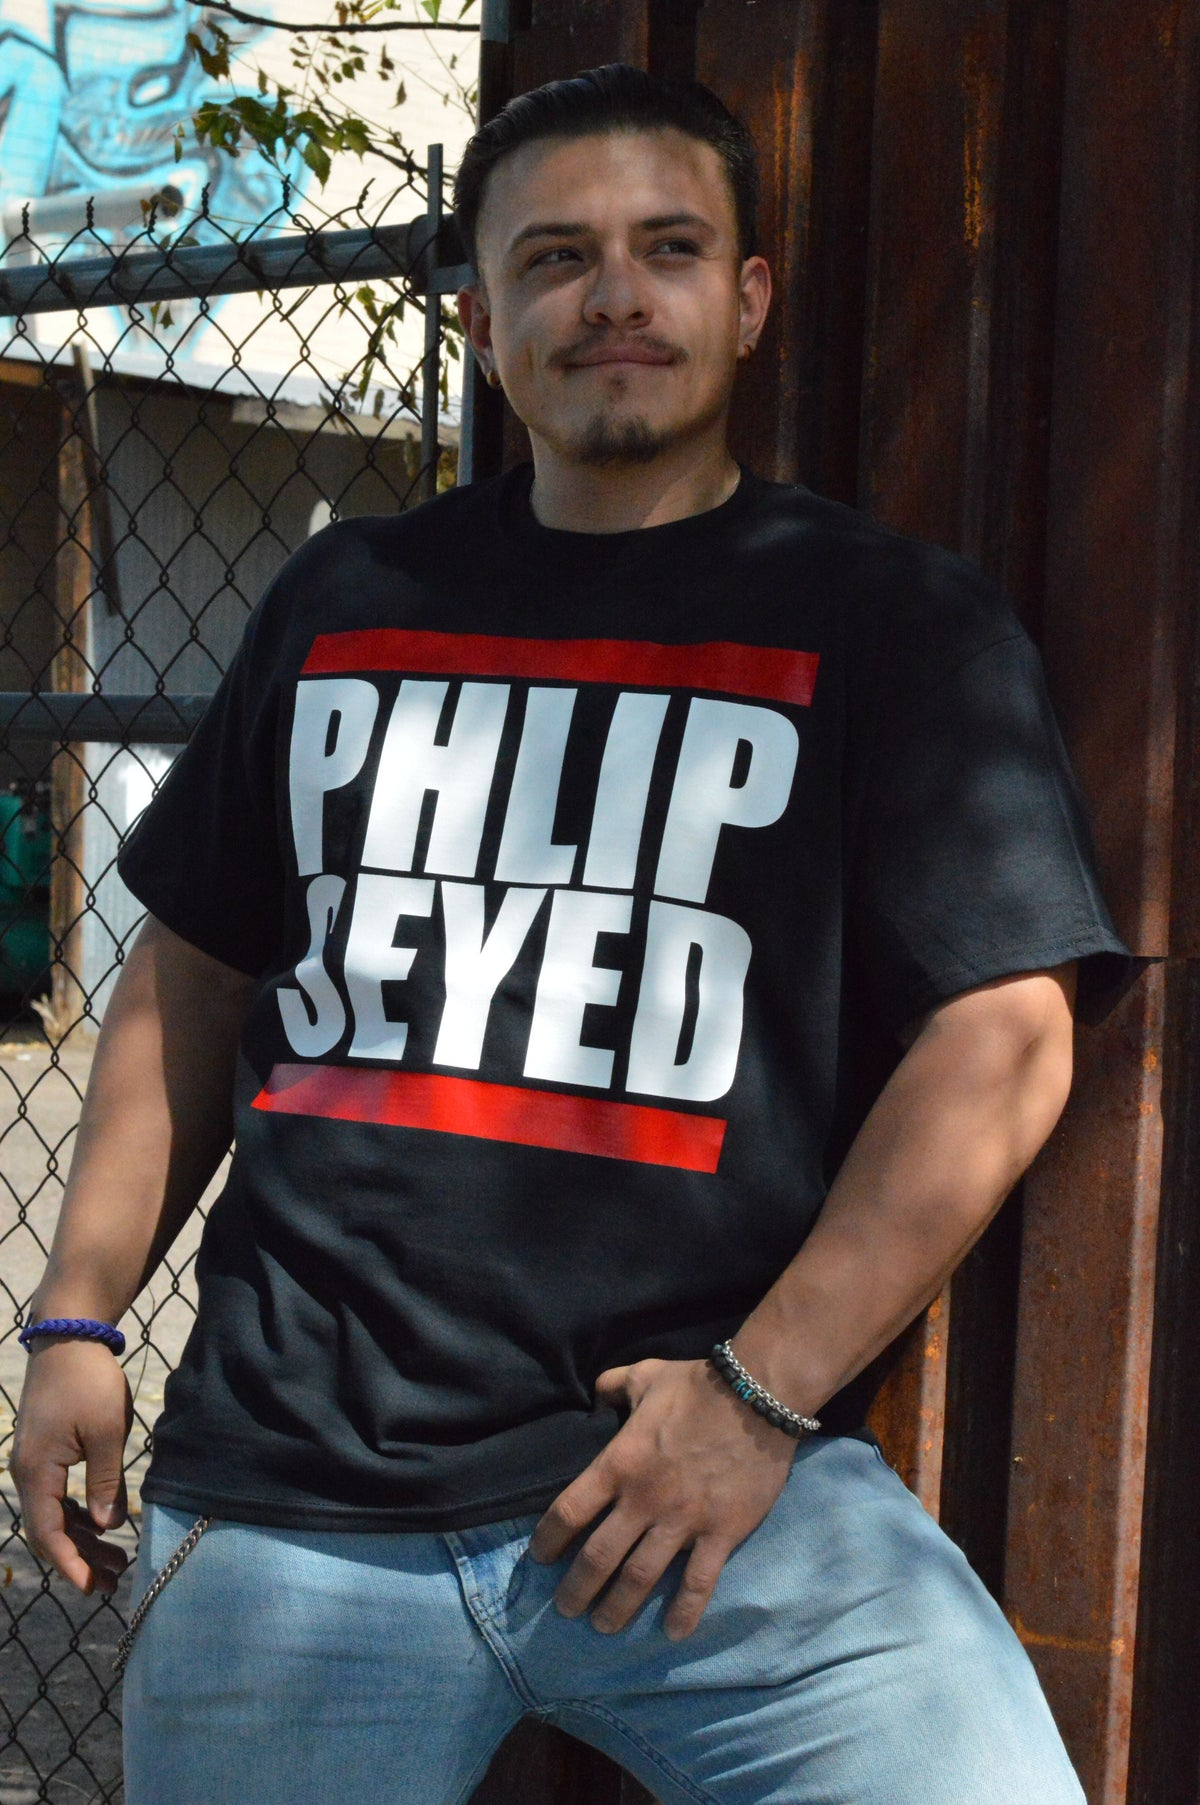 Phlipseyed RDMC / Black